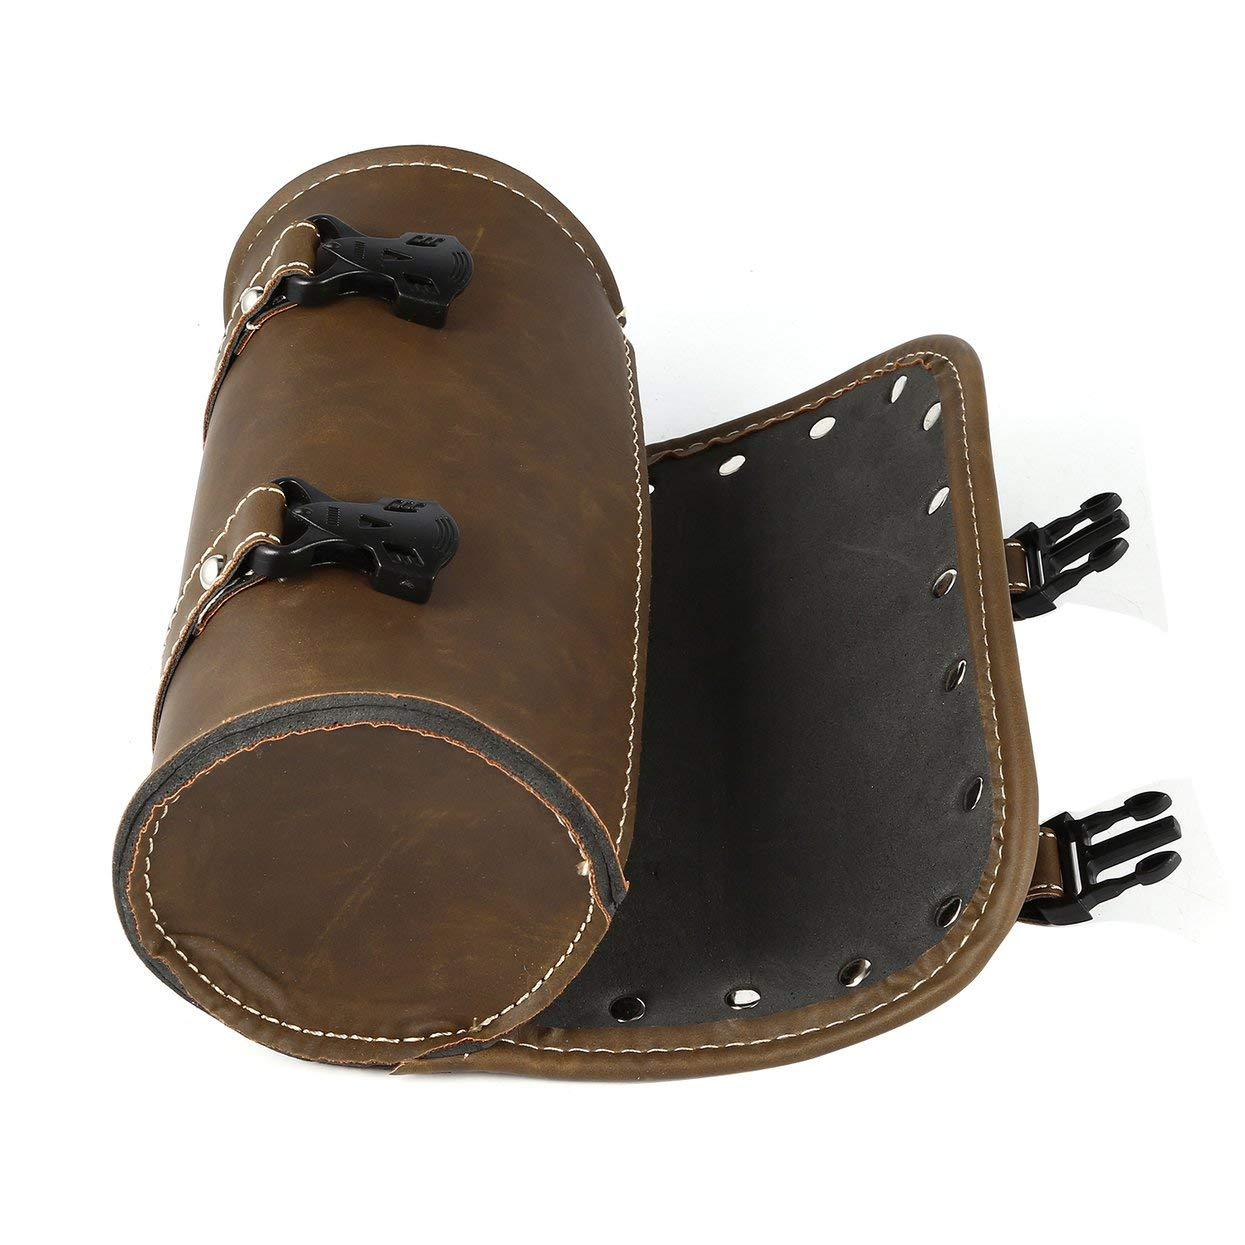 Tree-on-LifeUniversal Motorcycle Saddle Bags Fork Tool PU Leather Bag Luggage Handlebar Bag Tail Bags Roll Shape Motocross Saddlebag